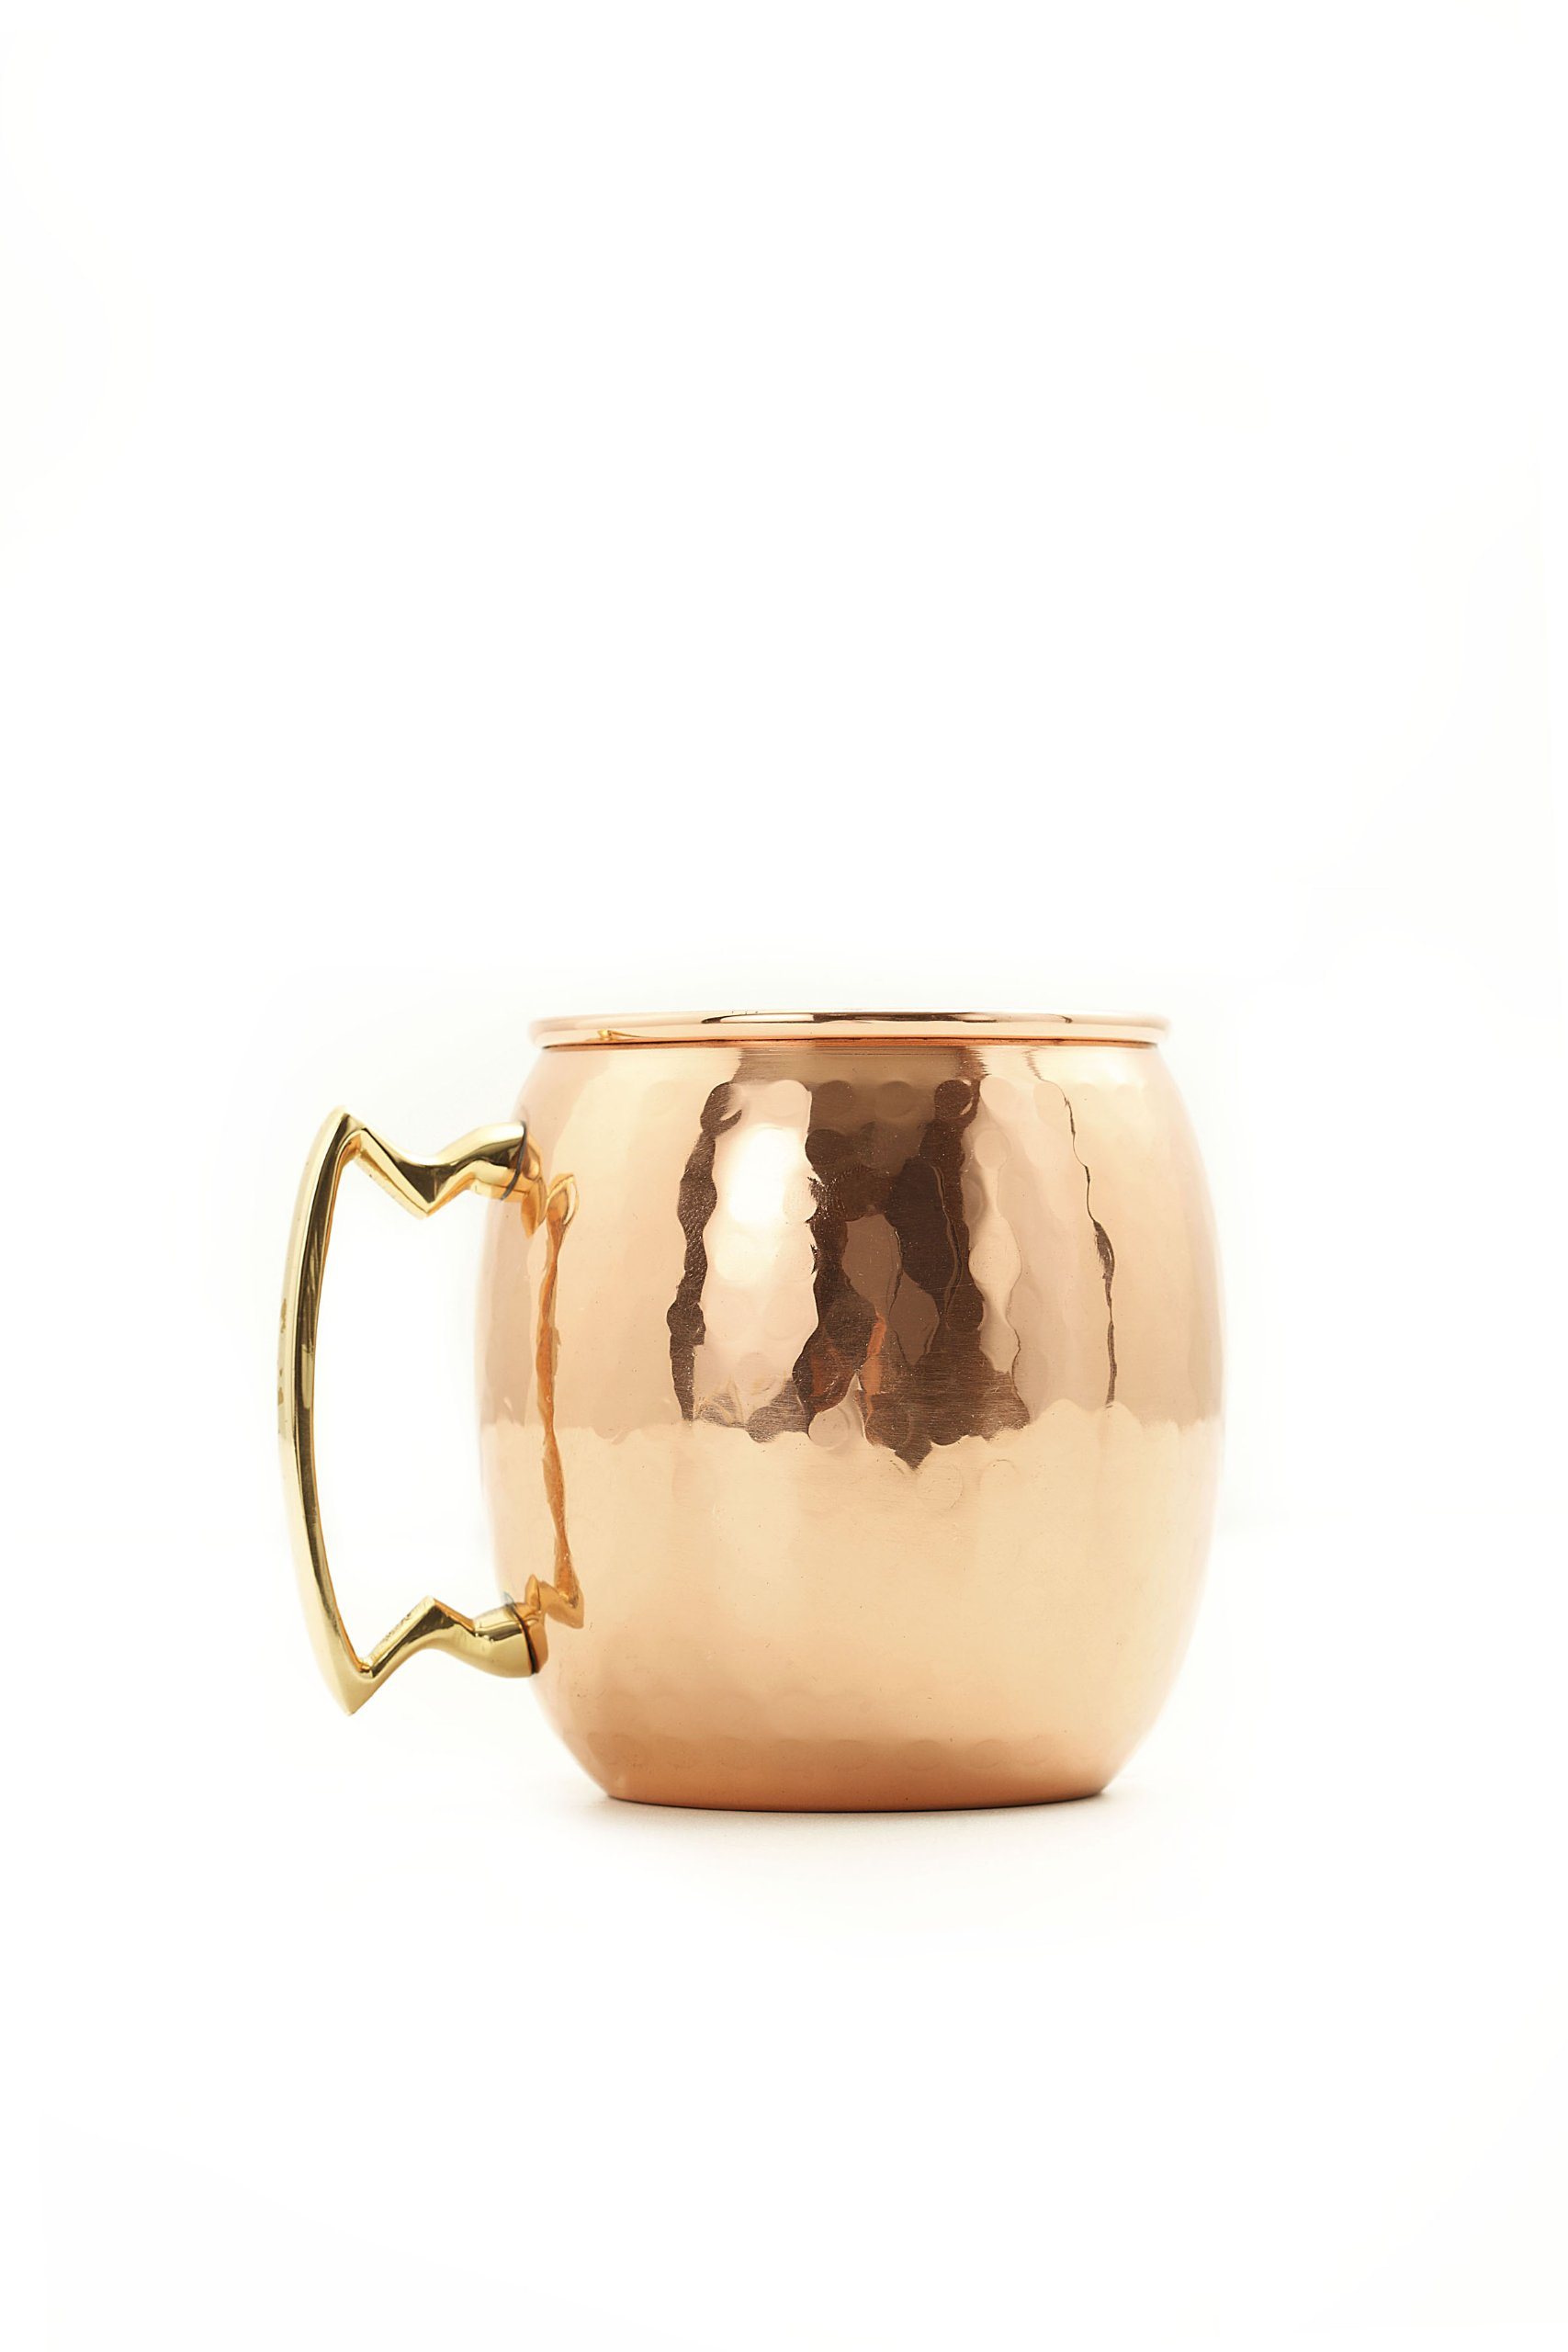 Old Dutch Nickel-Lined, Solid Copper Hammered Moscow Mule Mug, 24 Oz.